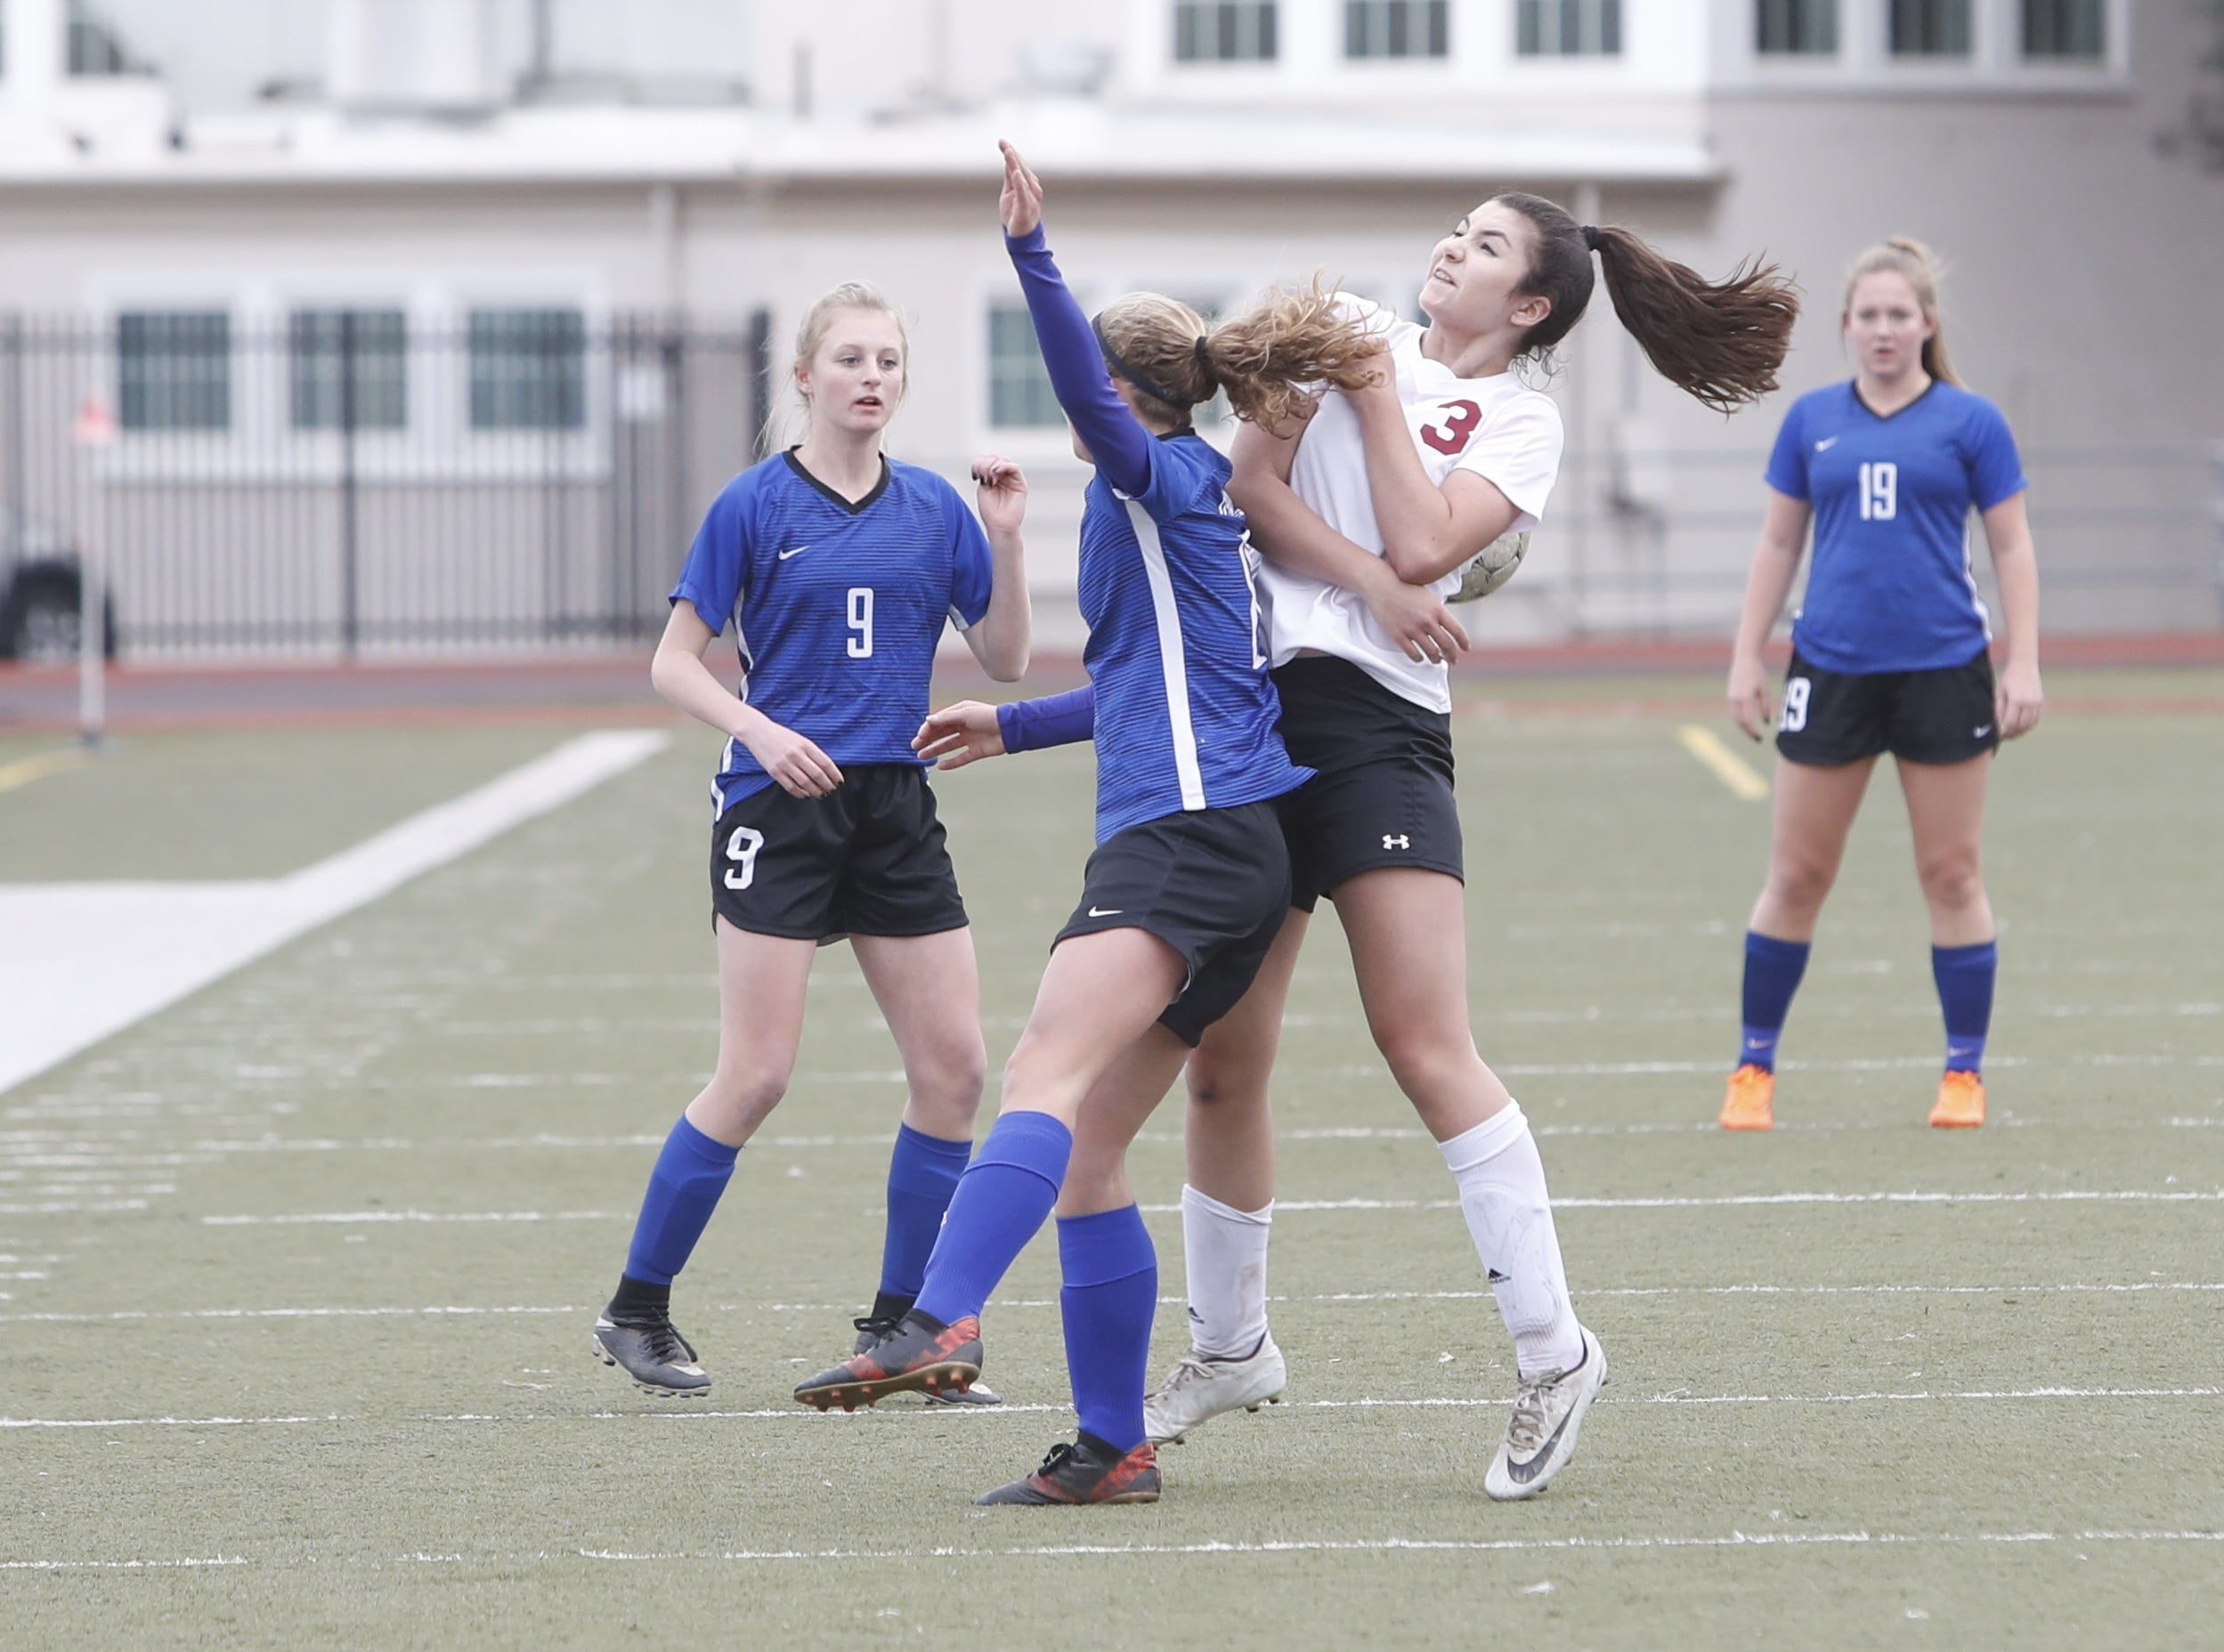 U-Prep freshman Rebecca Gaido and West Valley sophomore Bianca Jones fight to control a ball in the air during the Panthers' 4-1 win at home over West Valley on Thursday, Feb. 7, 2019.